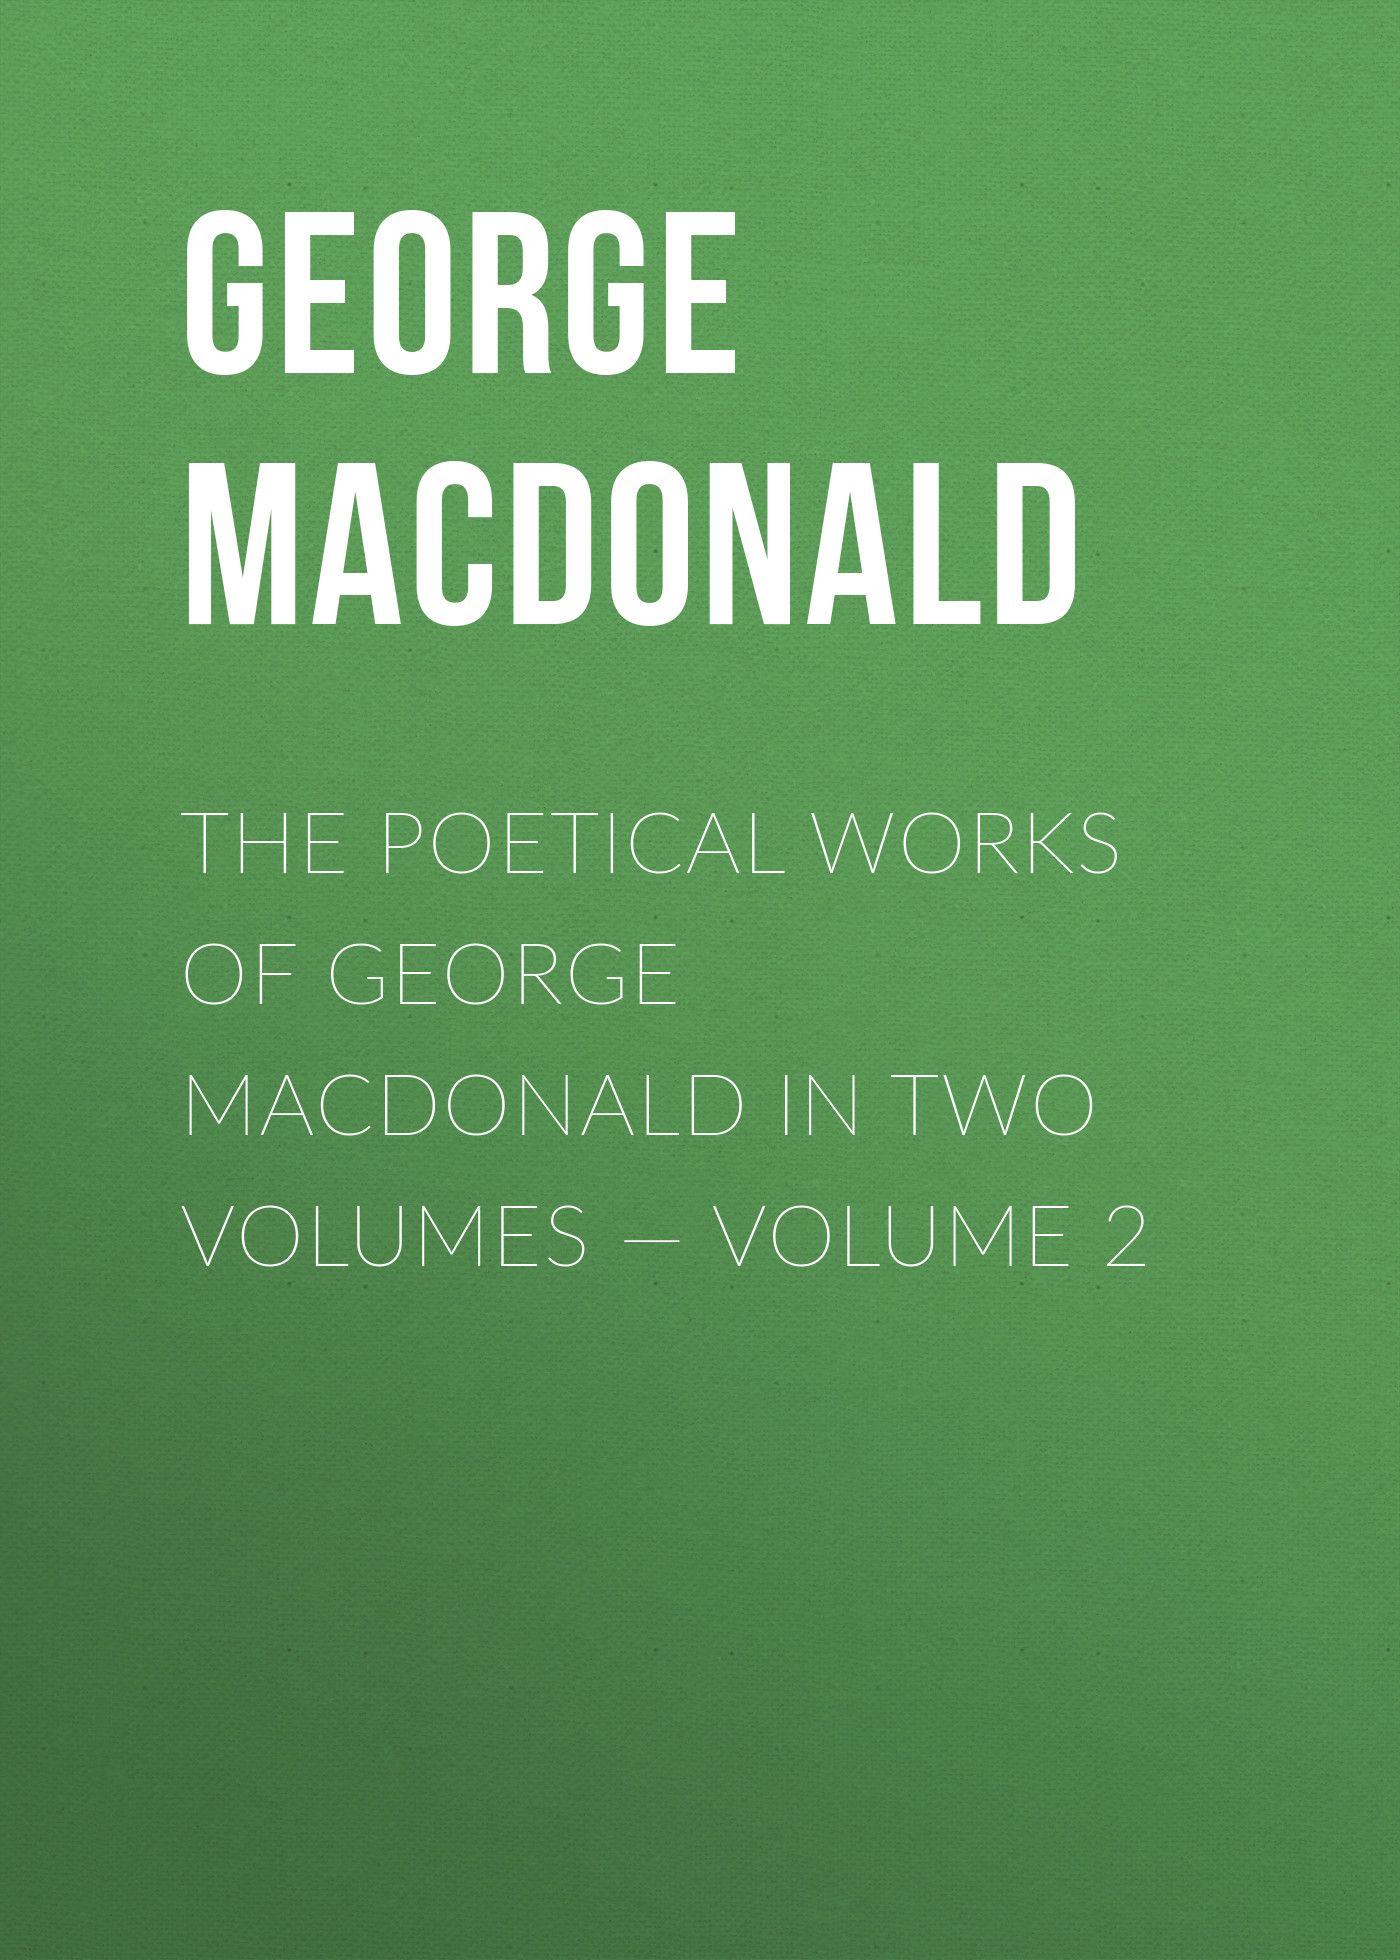 George MacDonald The poetical works of George MacDonald in two volumes — Volume 2 george macdonald a double story